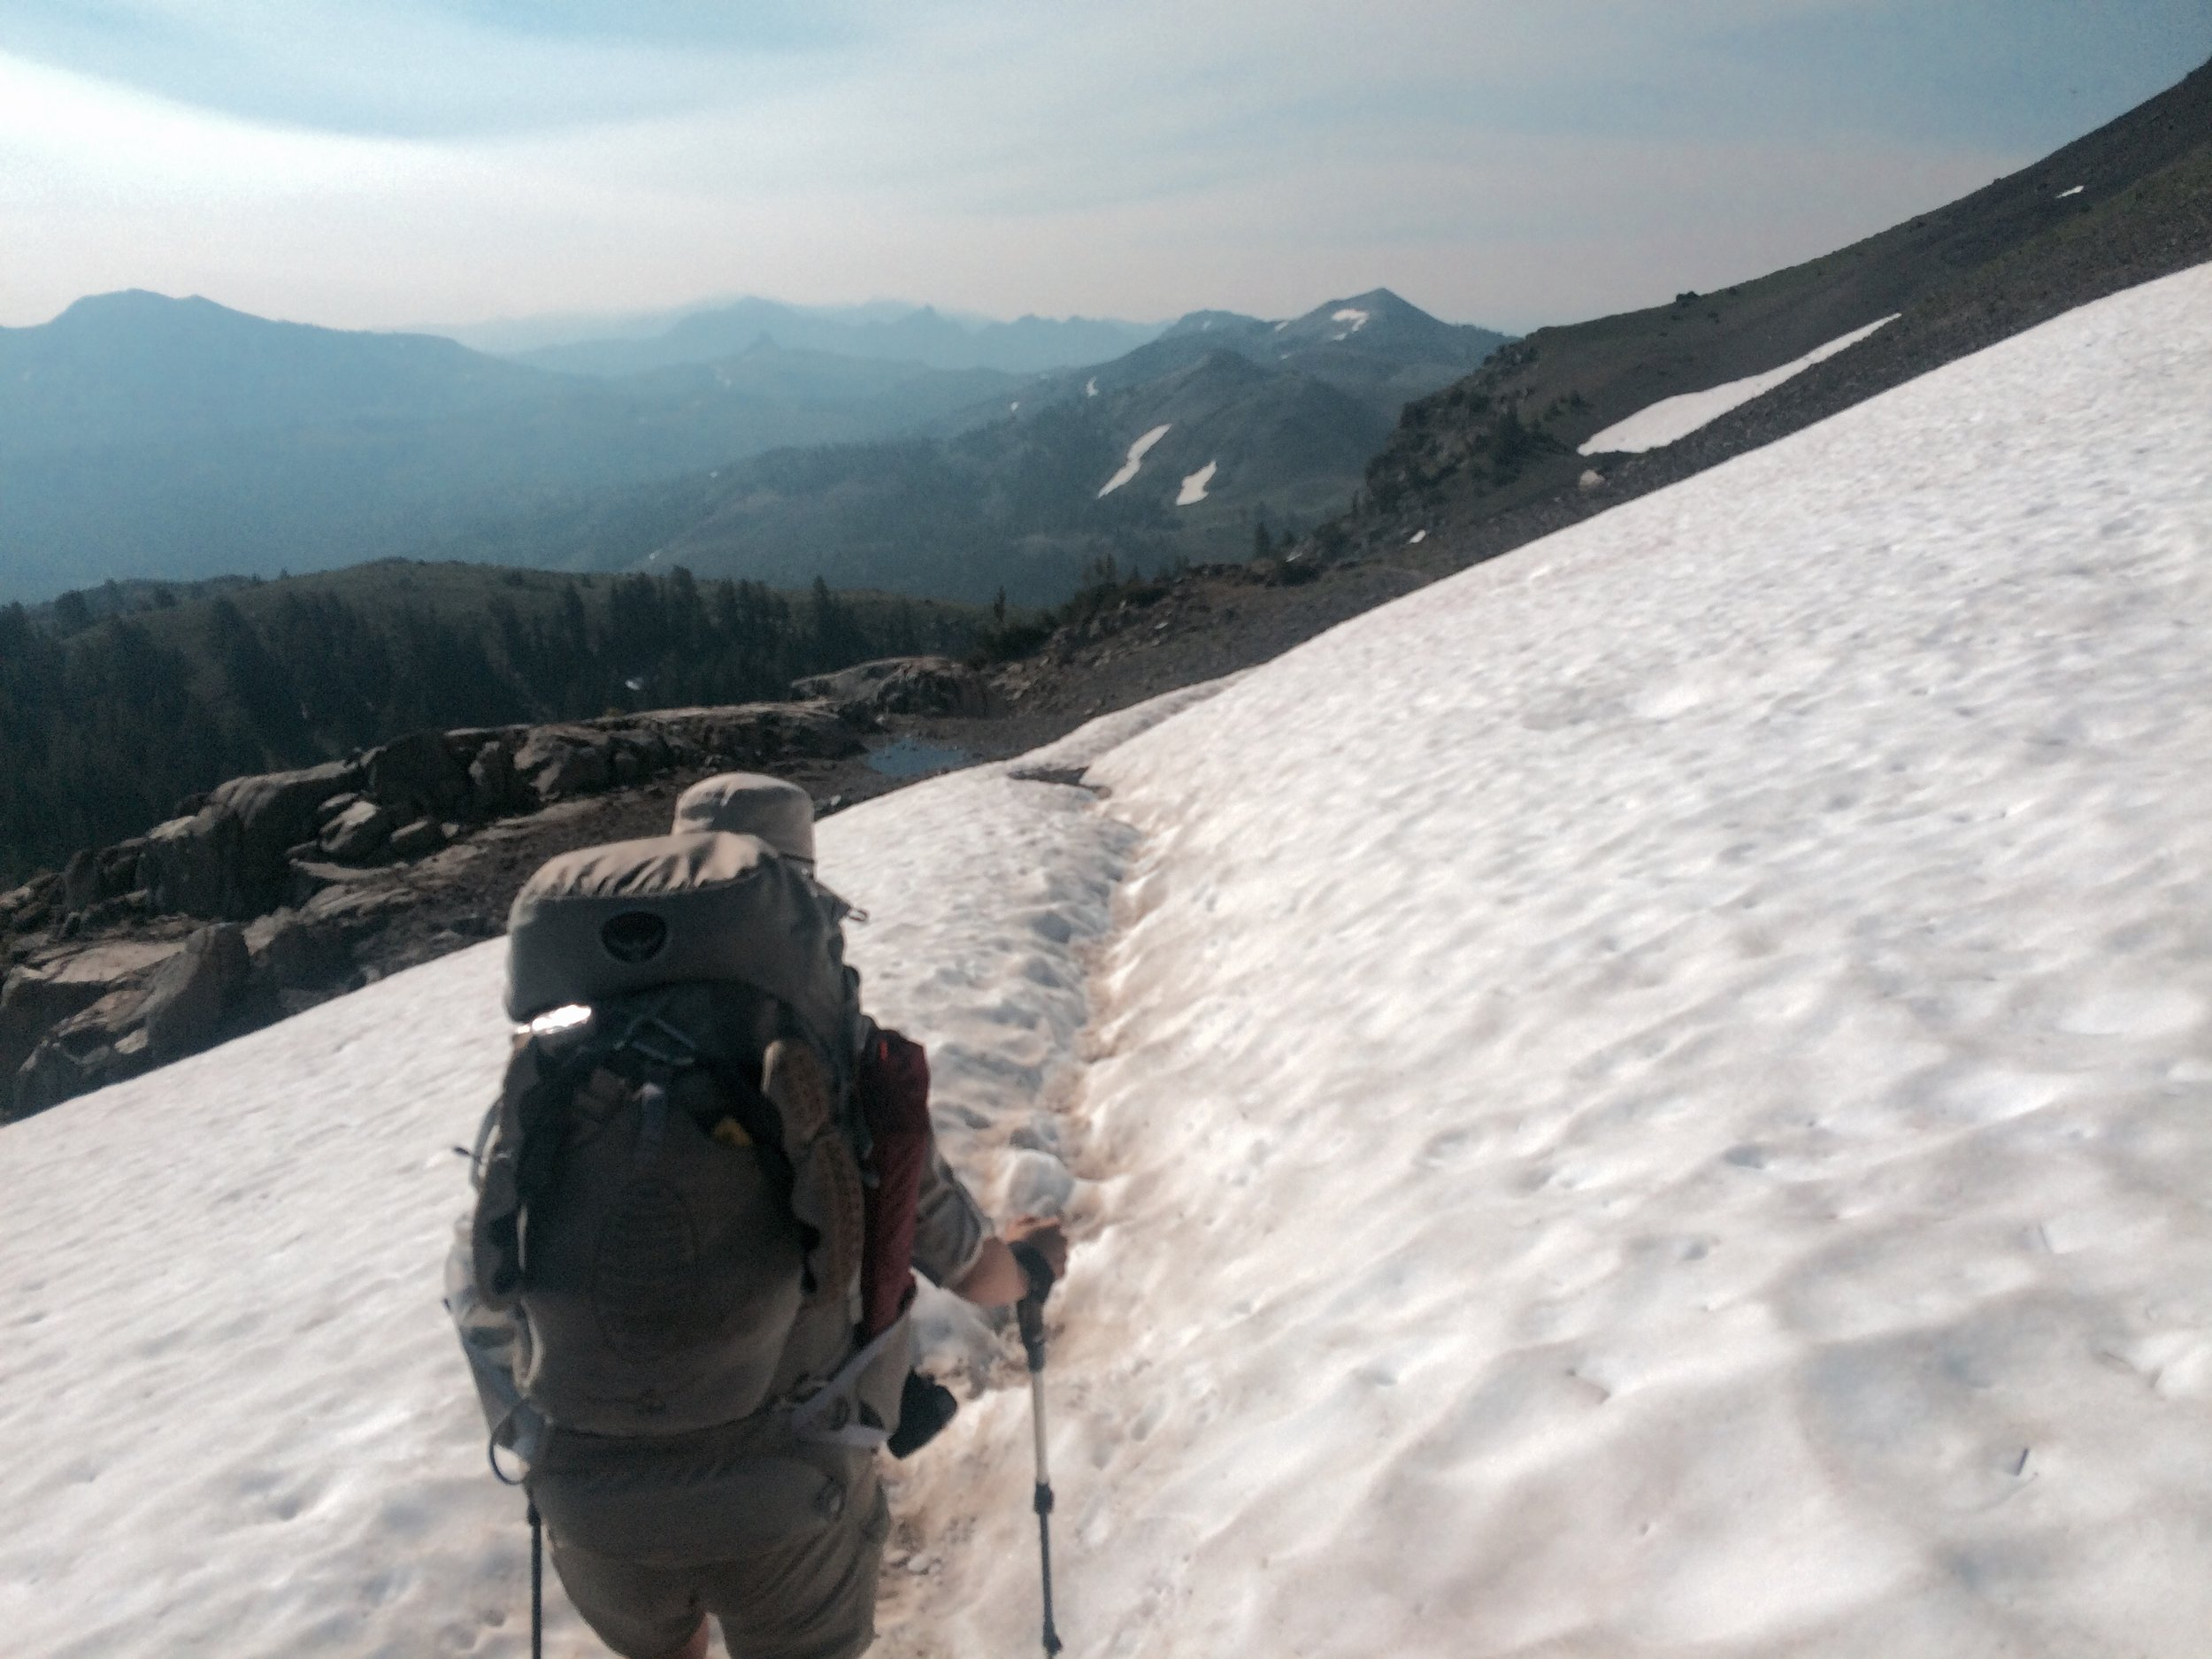 One of the lingering snow patches we crossed